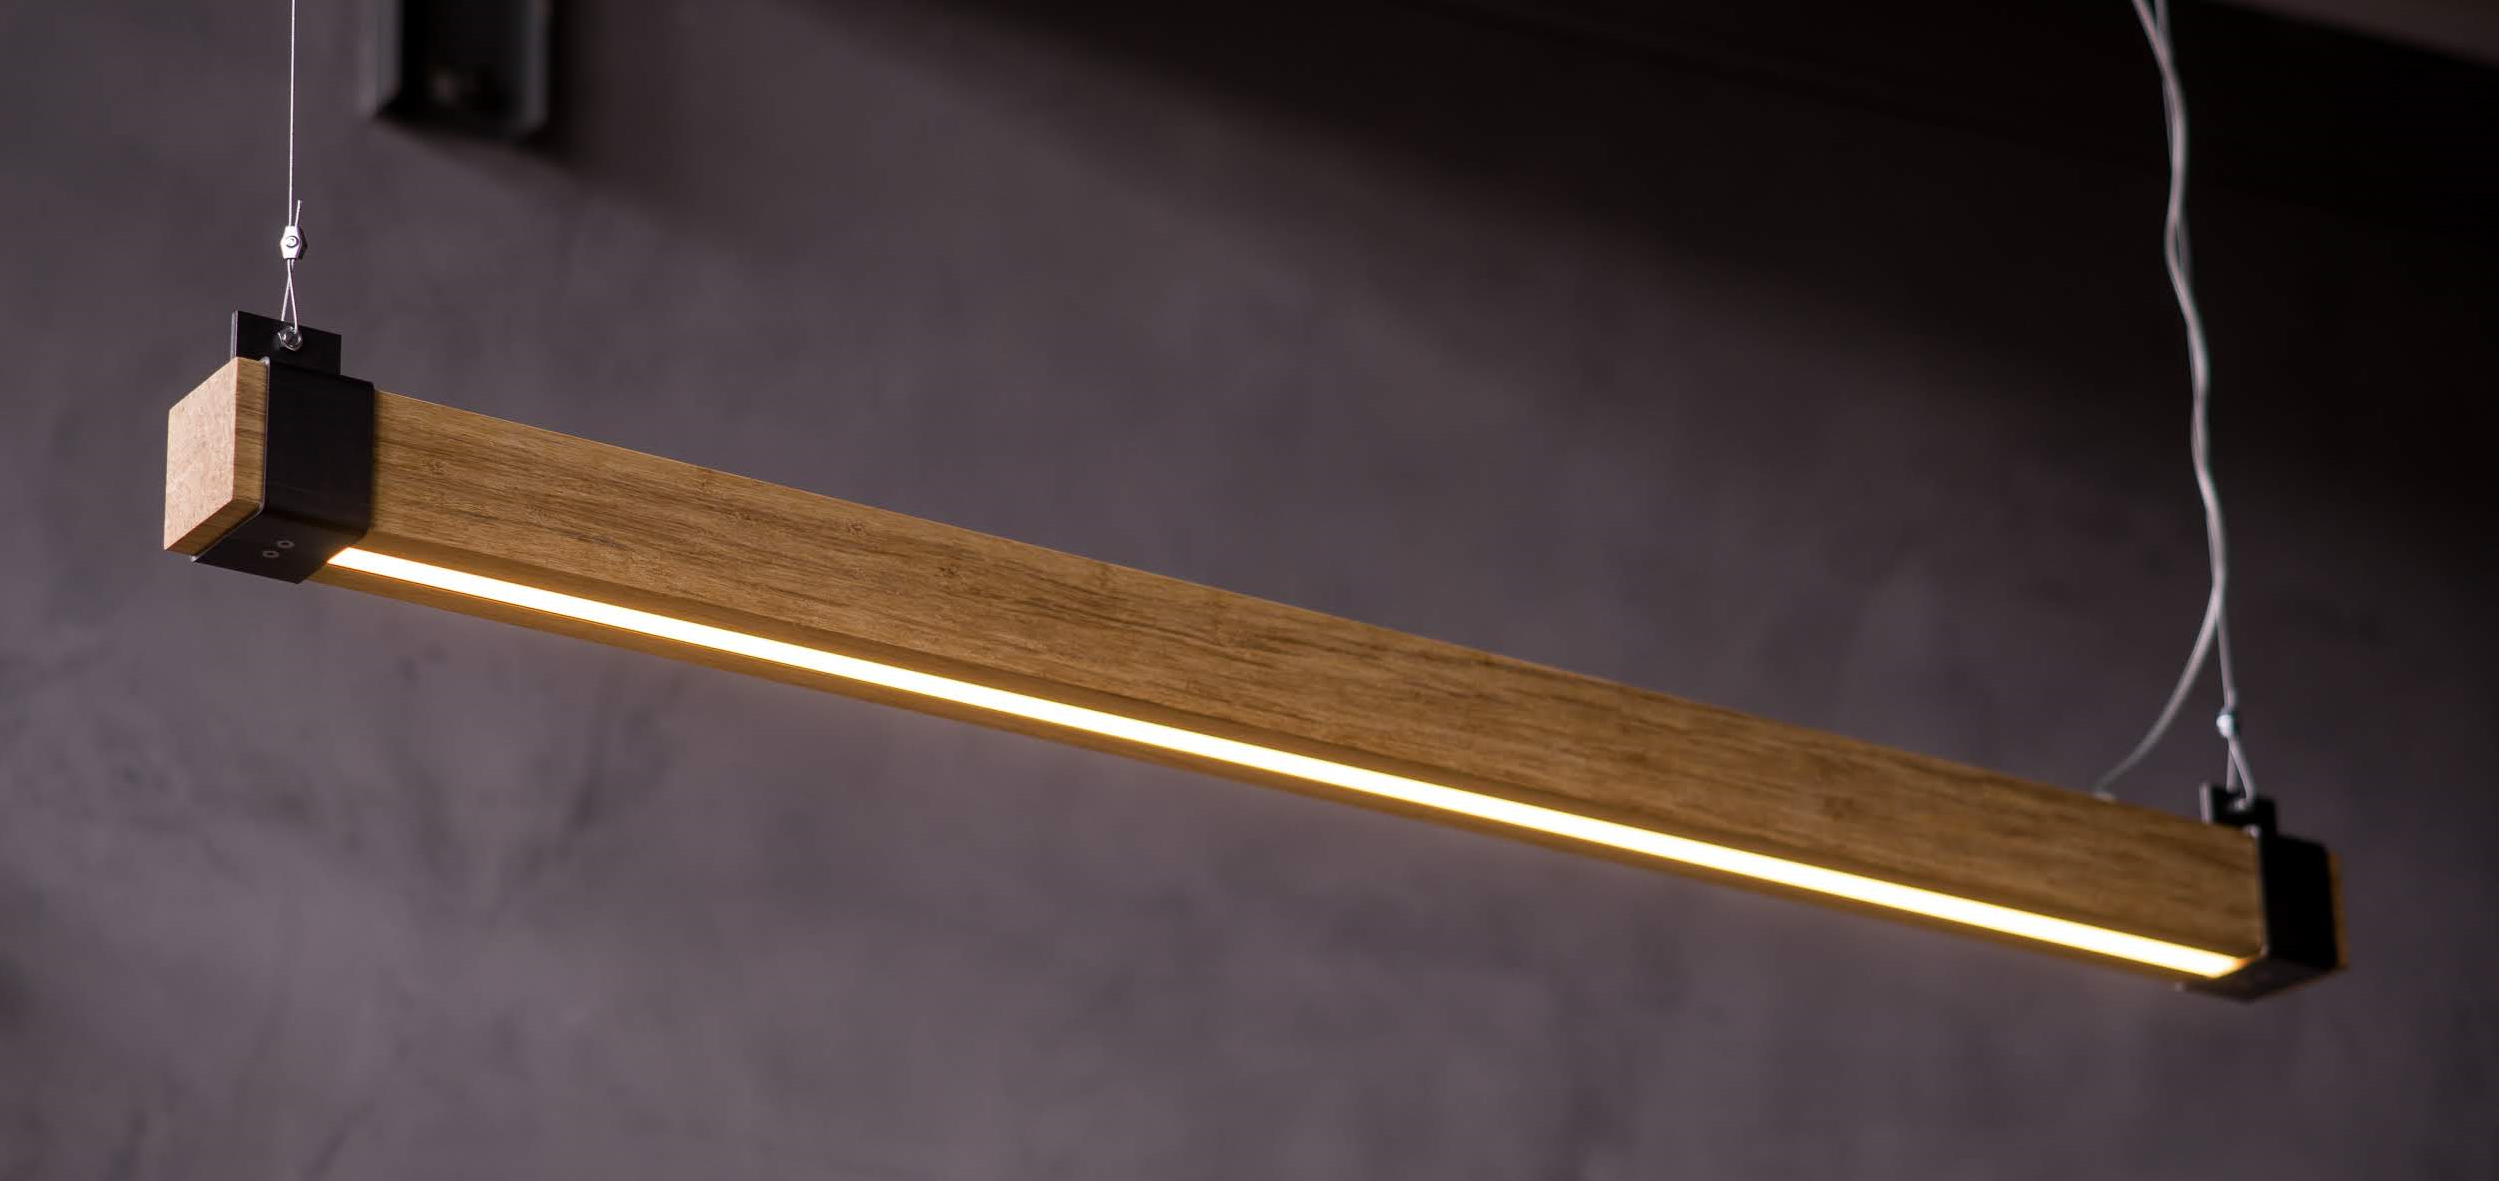 Dimbare LED lamp Woodlight van Indusigns